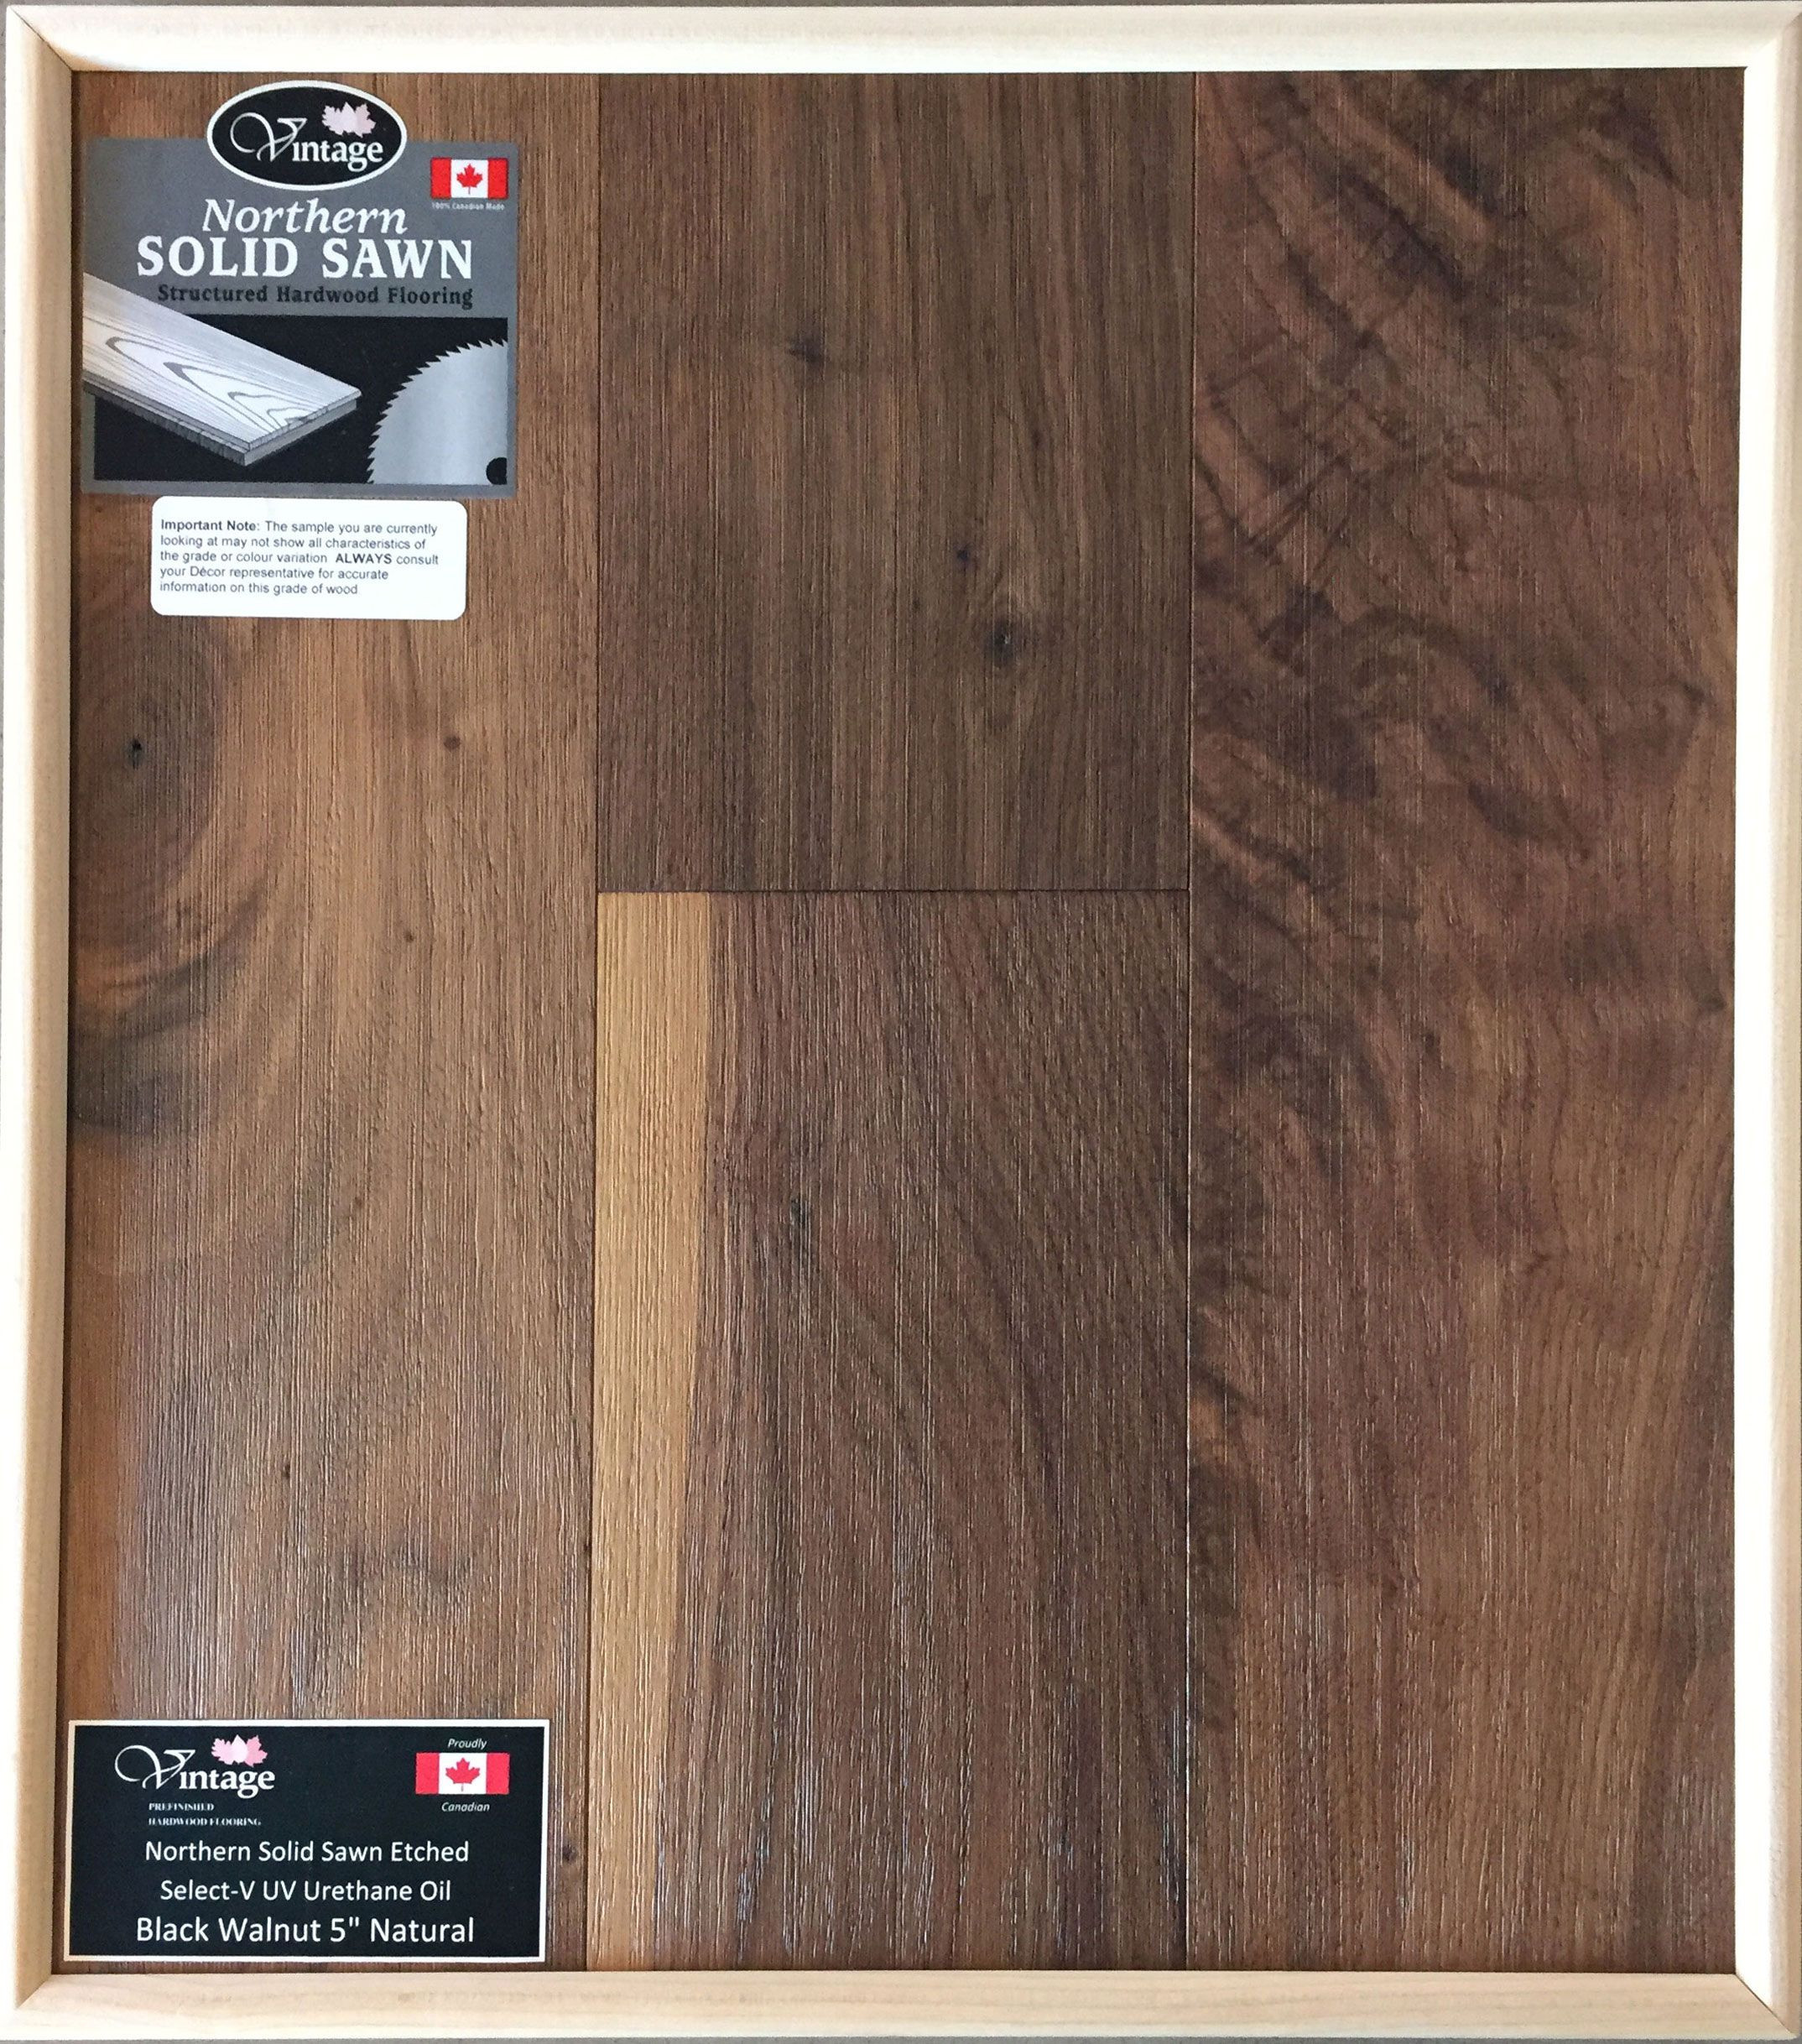 white oak select hardwood flooring of personal selection engineered hardwood flooring black walnut 5 pertaining to personal selection engineered hardwood flooring black walnut 5 natural